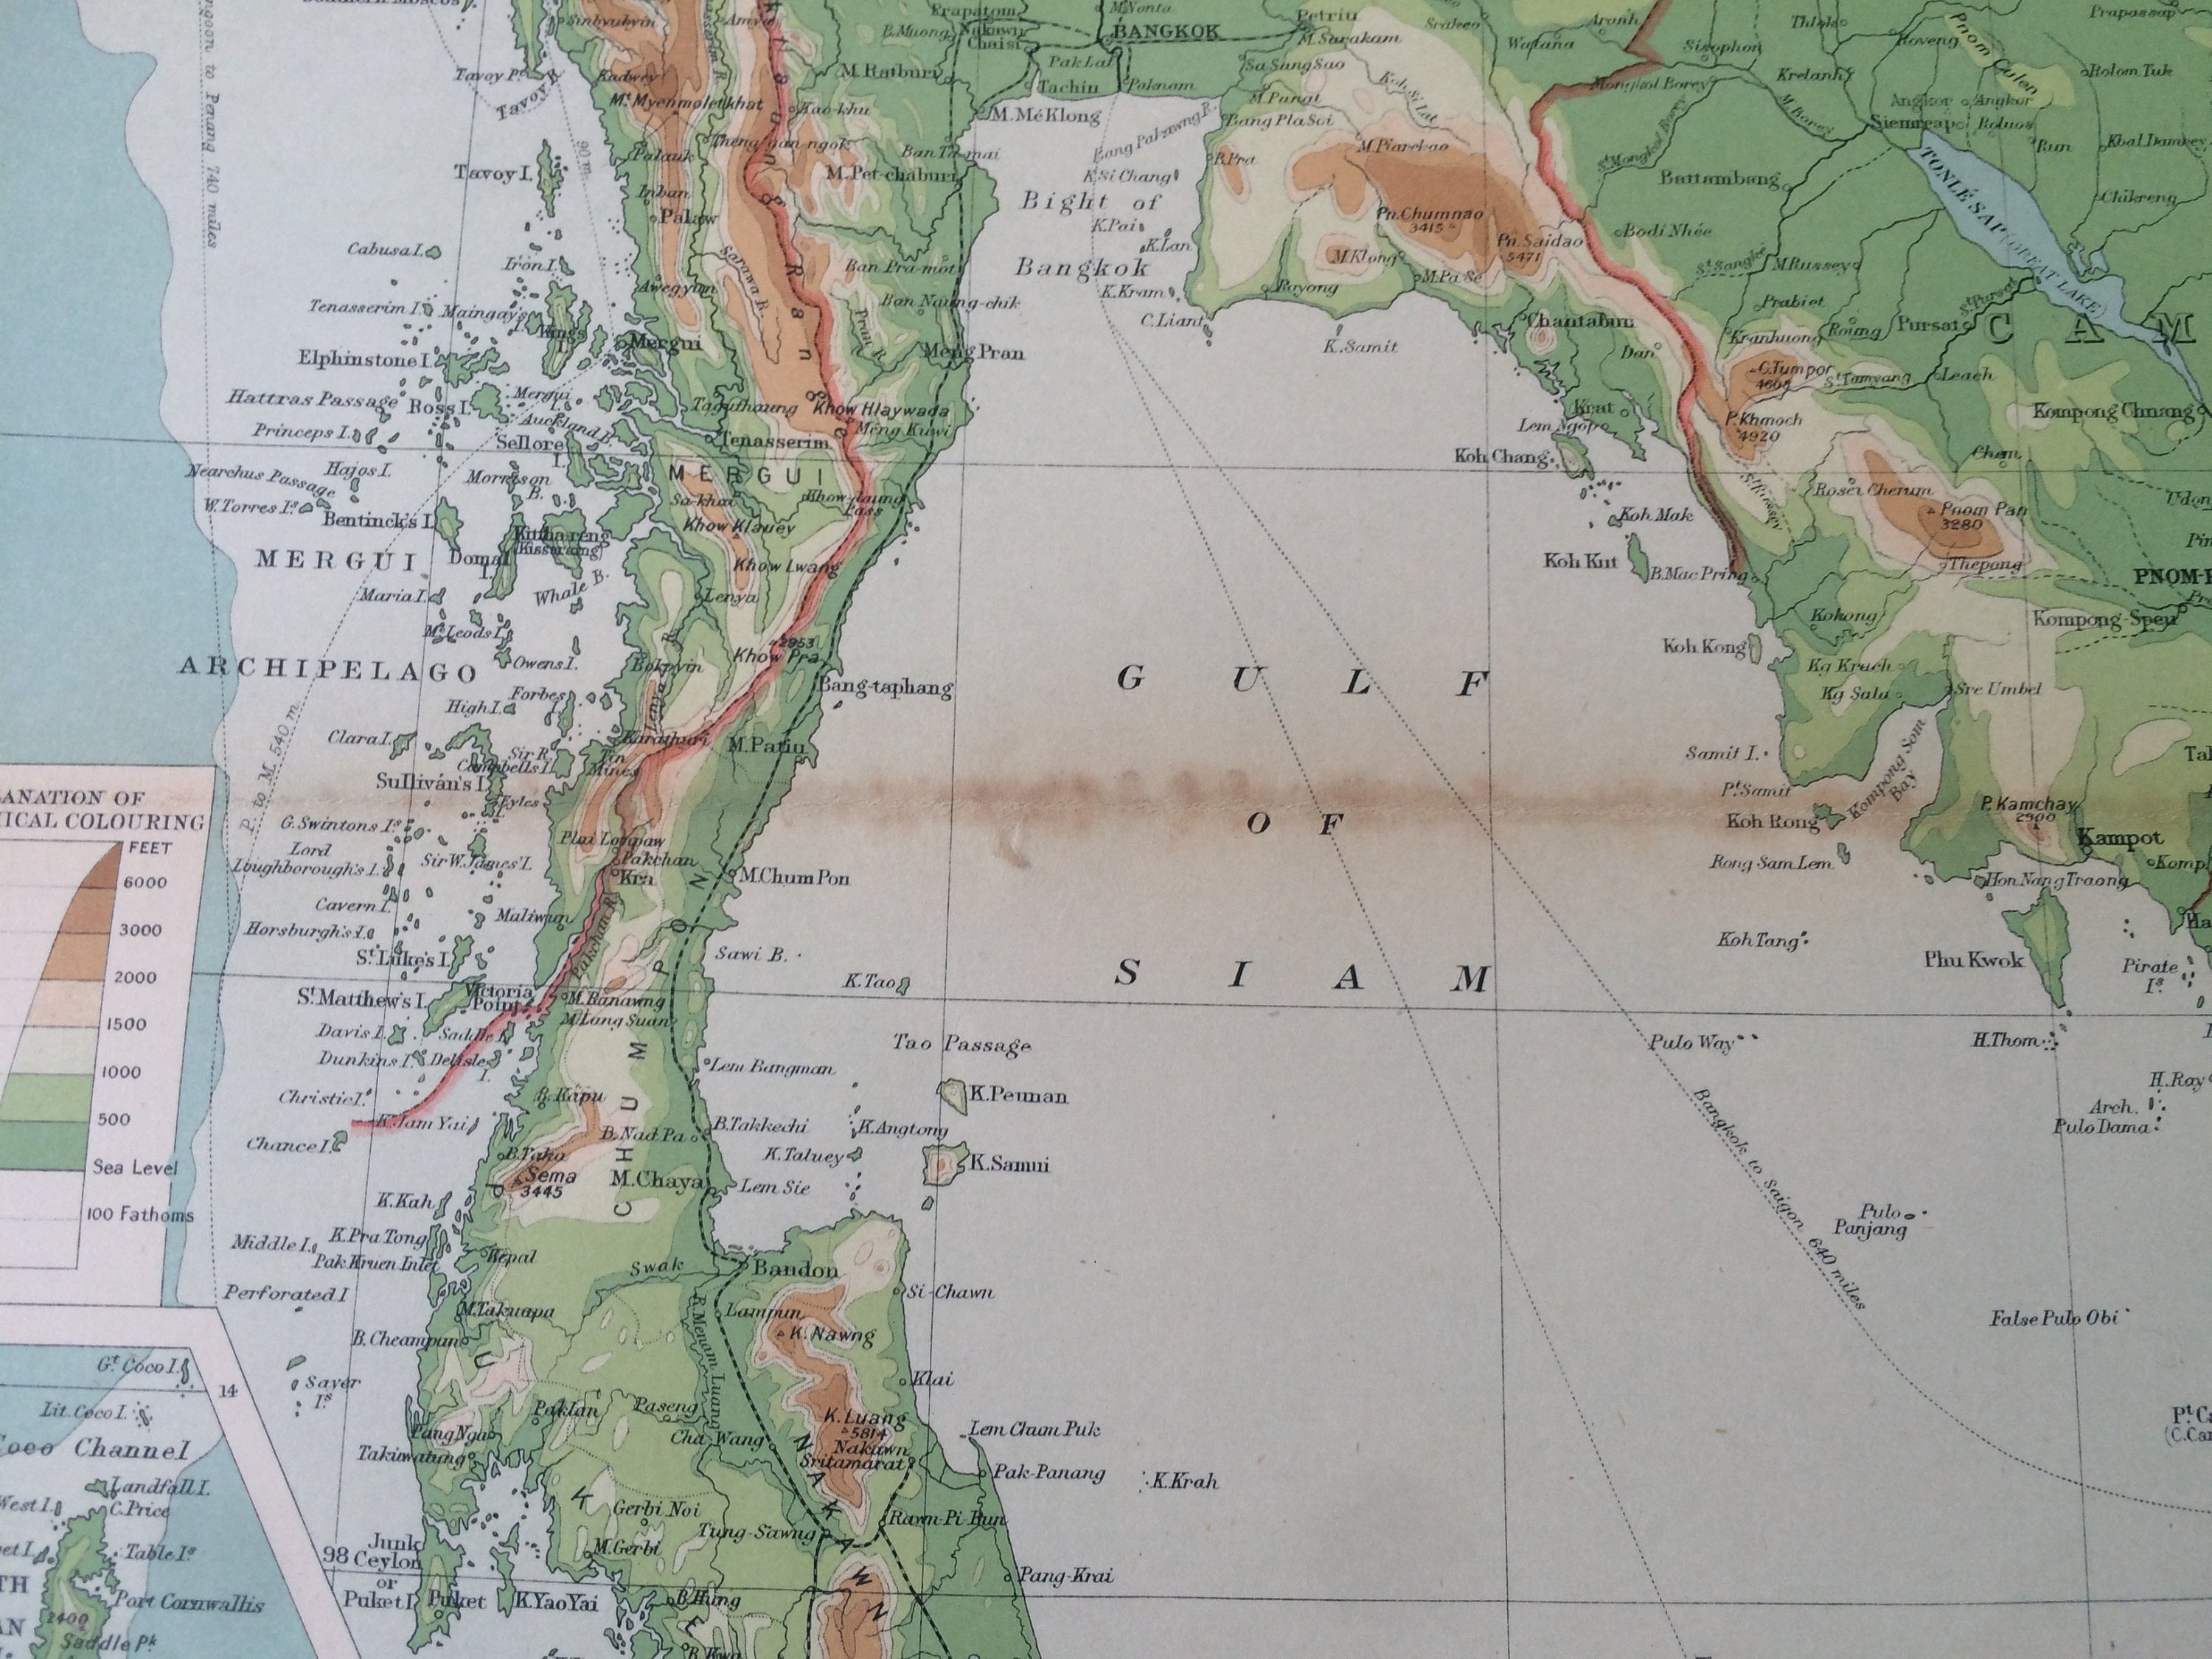 Picture of: 1922 Farther India Large Original Antique Times Atlas Physical Map With Inset Maps Of Singapore Hanoi Andaman And Nicobar Islands